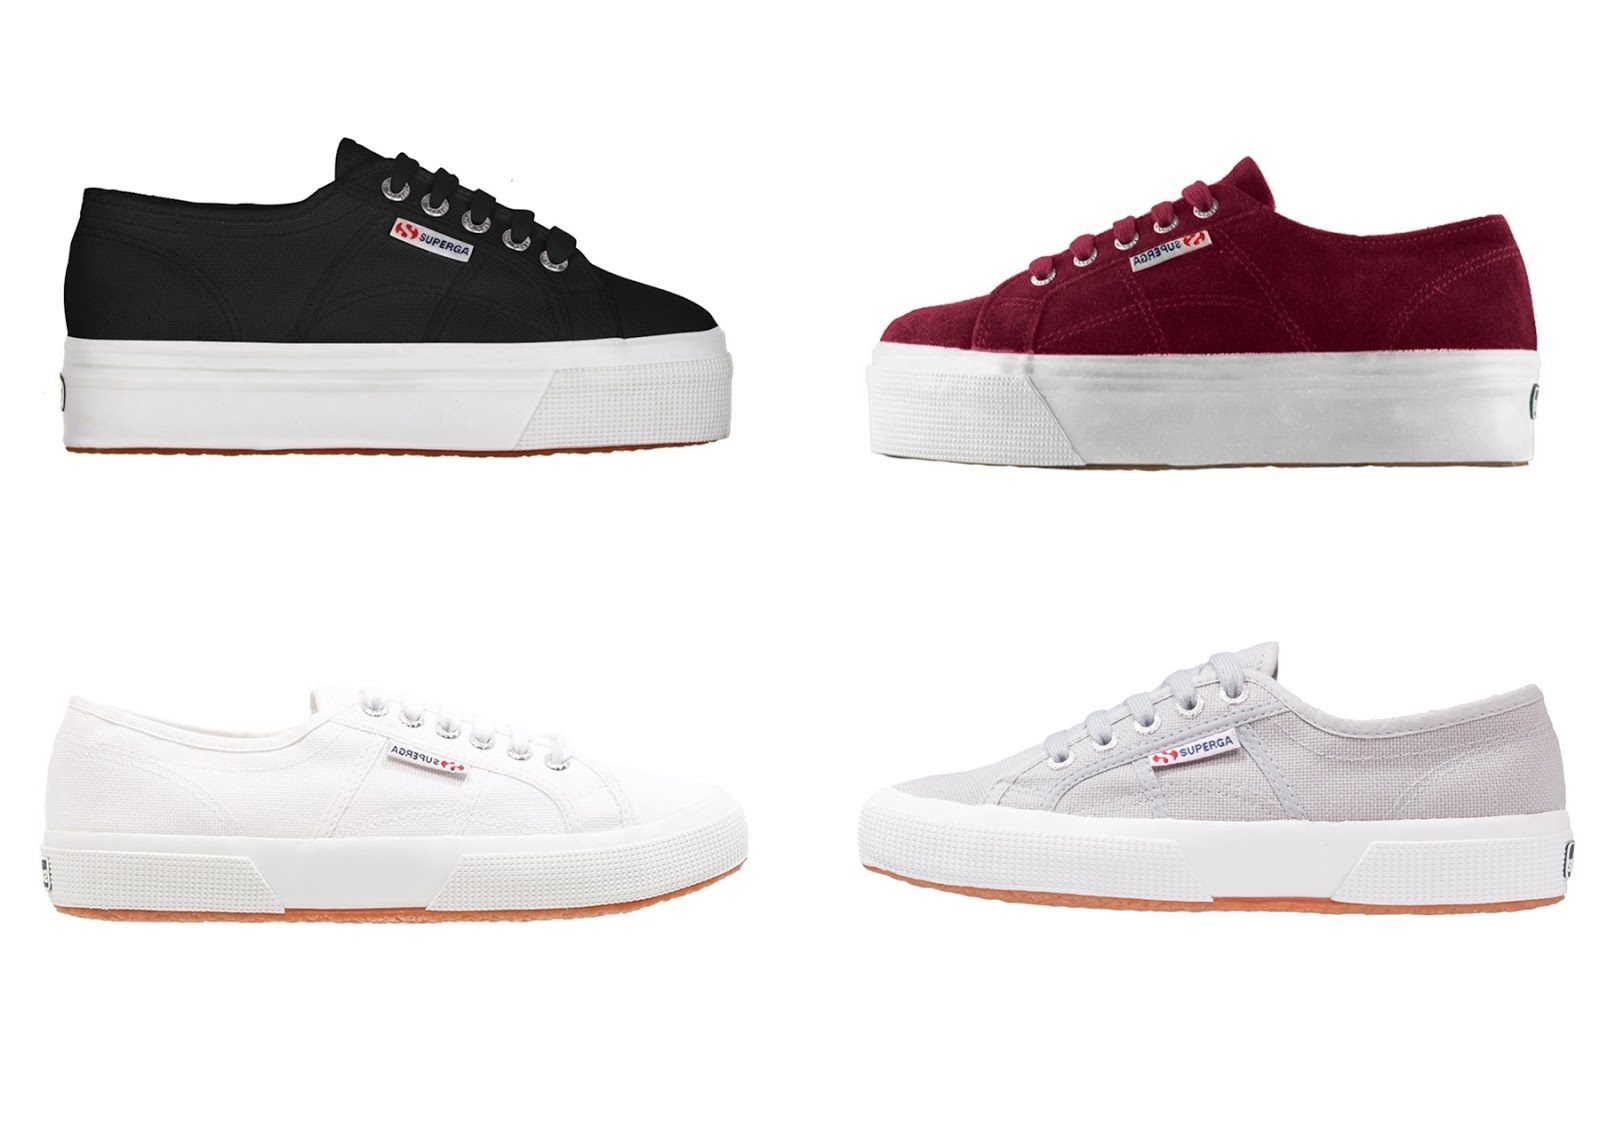 Superga, flatform, classic, 2750, 2790, suede, bordeaux, white, black, grey, minimal, sneakers, 2018, SS18